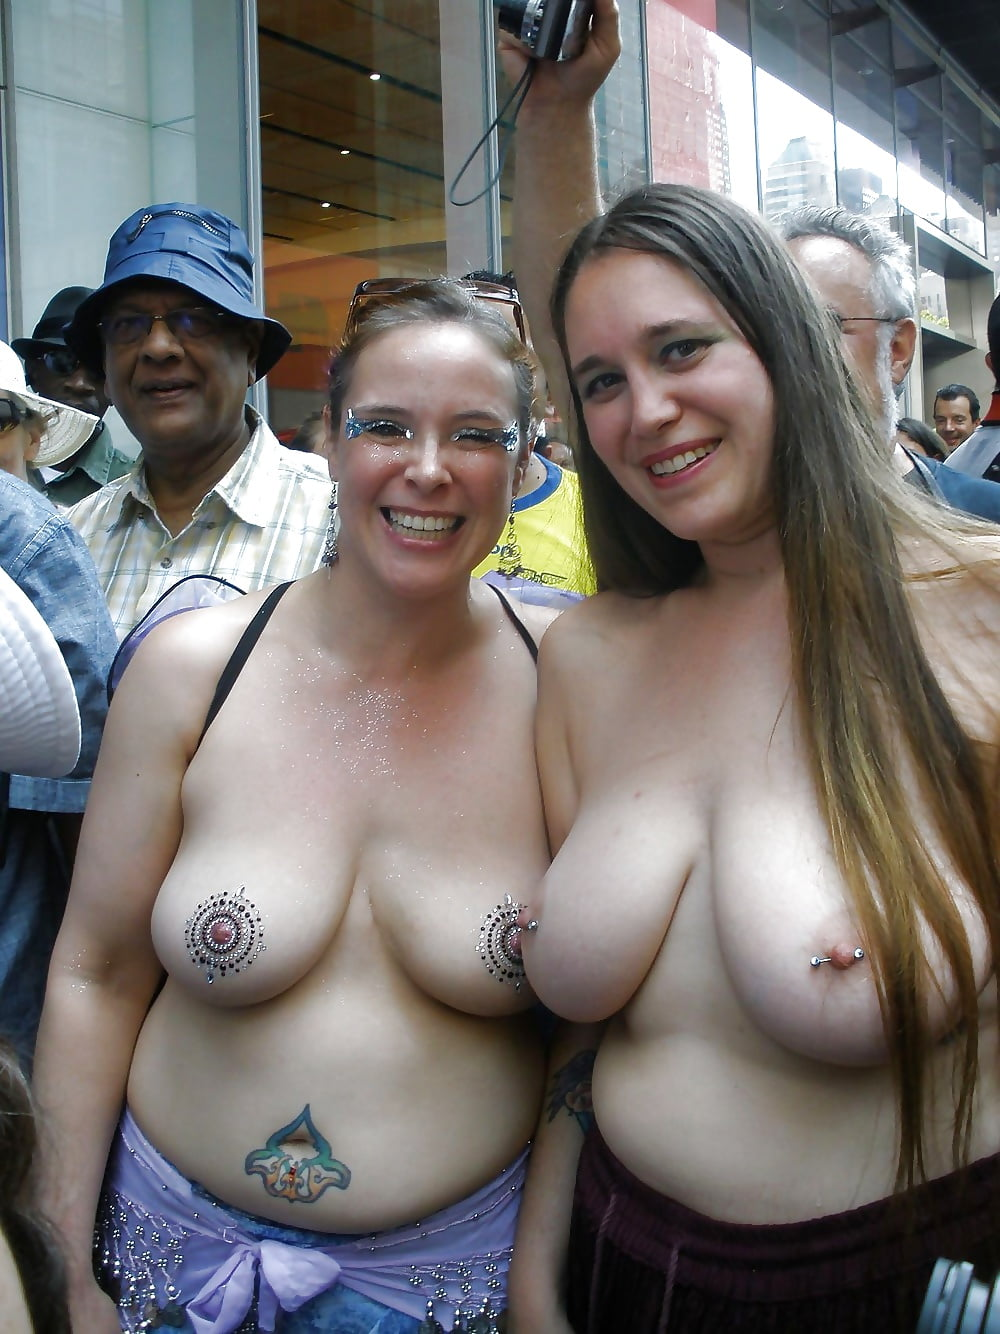 Show your girlfriends boobs — photo 4